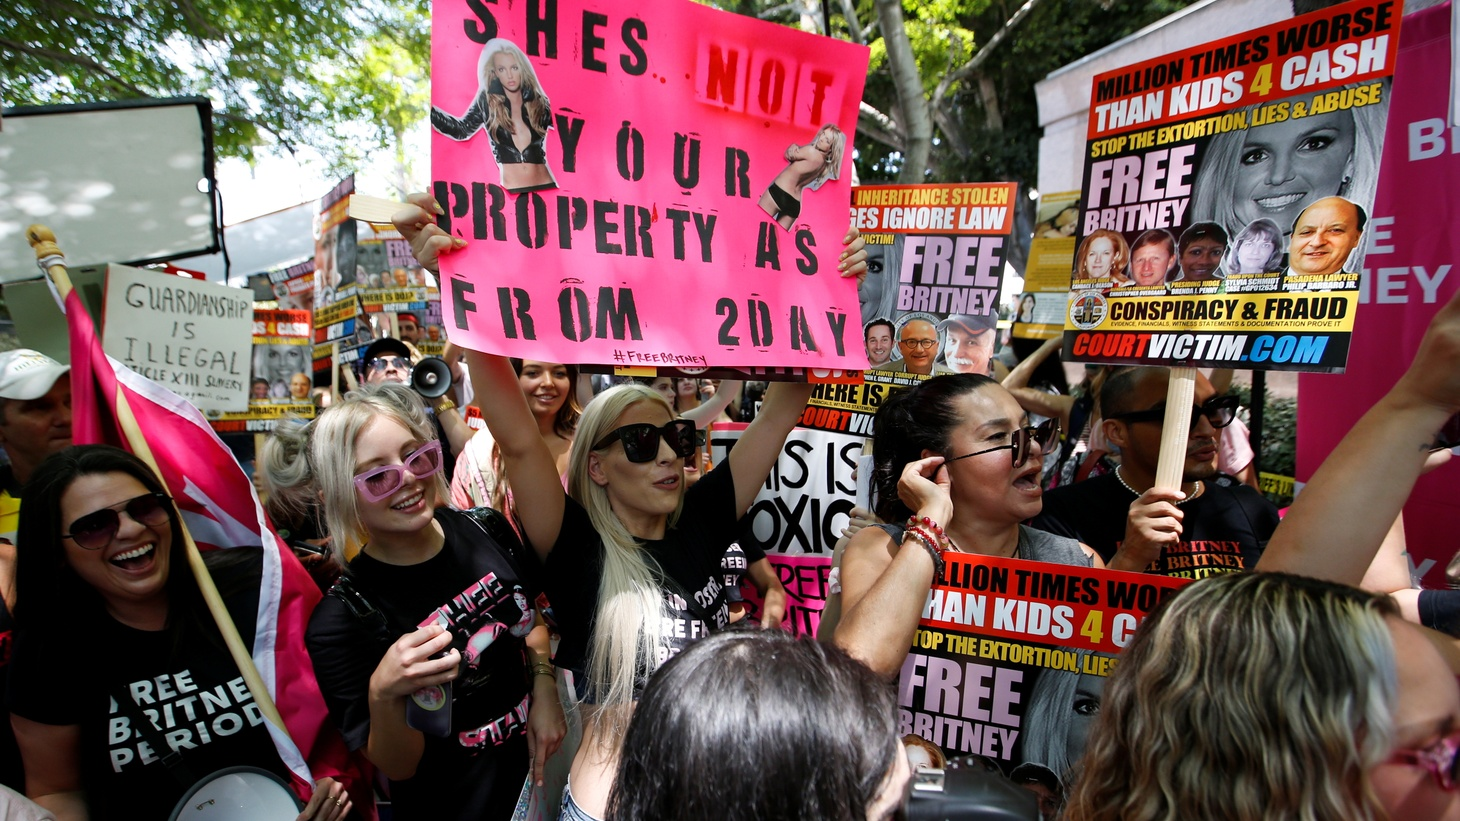 People protest in support of pop star Britney Spears on the day of a conservatorship case hearing at Stanley Mosk Courthouse in Los Angeles, California, U.S., July 14, 2021.